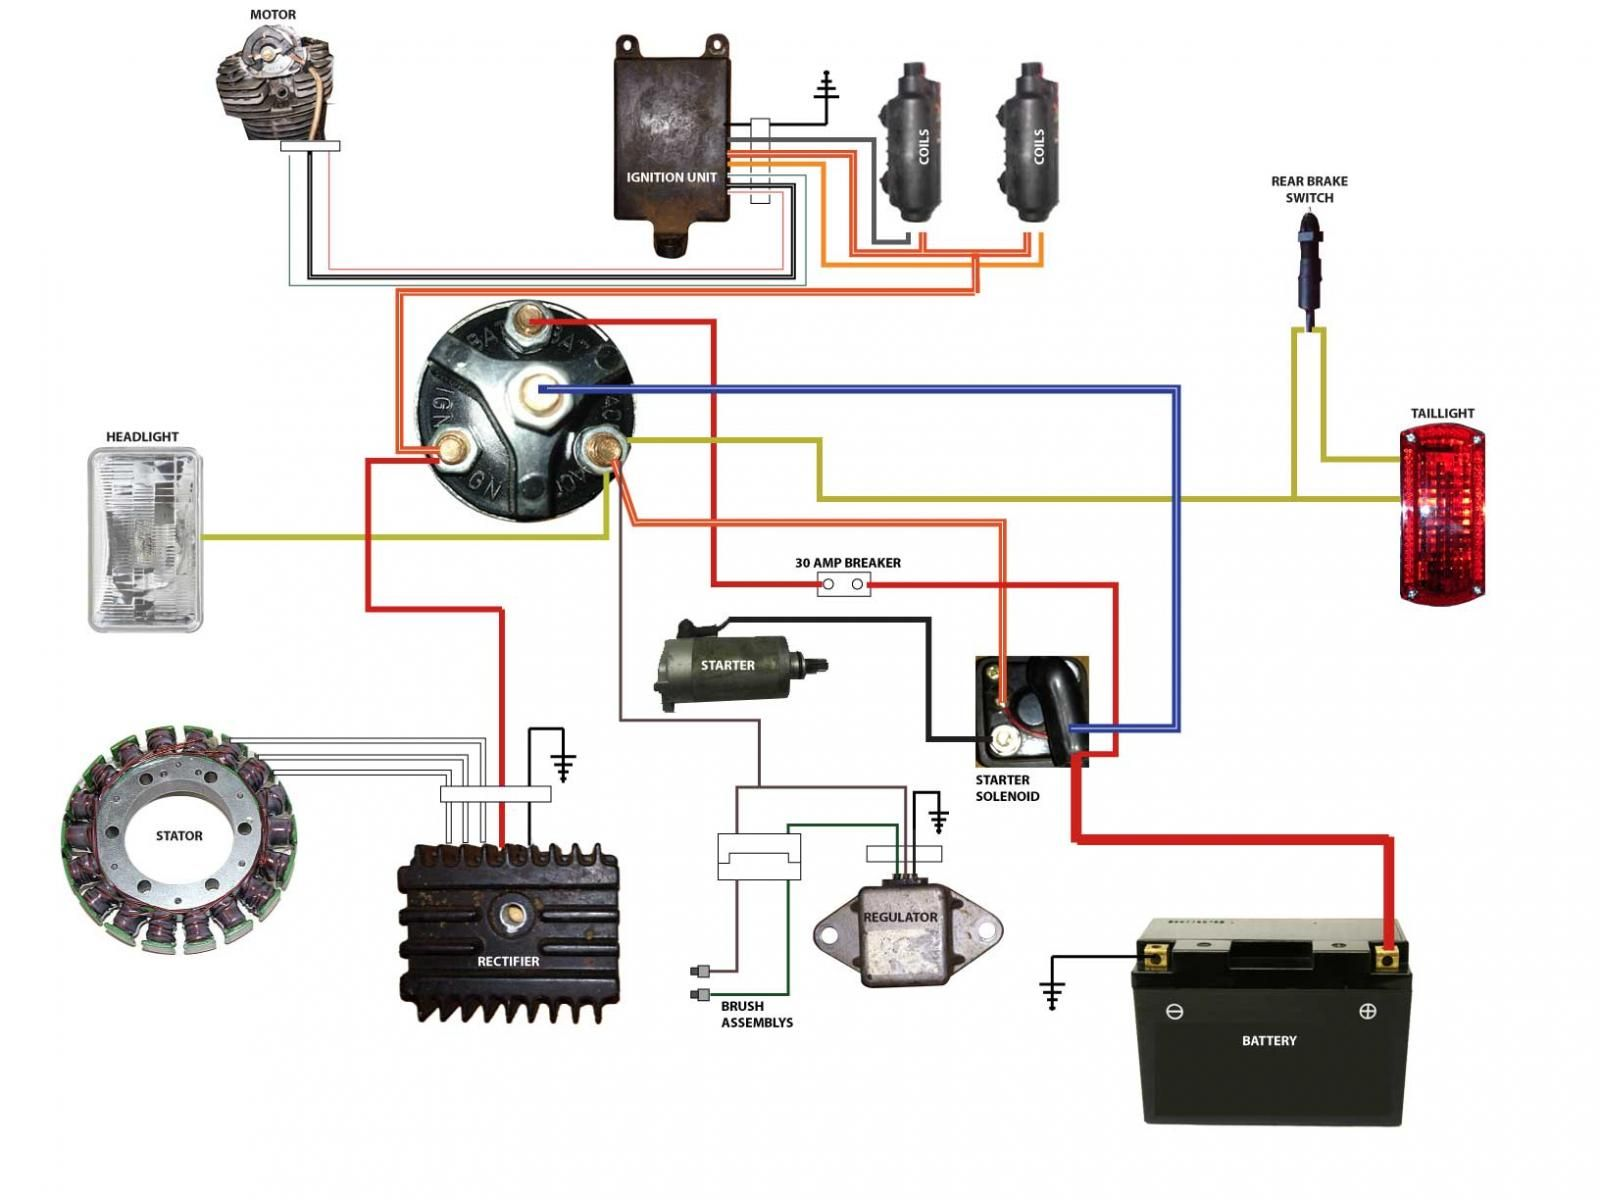 hight resolution of yamaha xs400 wiring wiring diagram mega xs400 special ii engine wiring